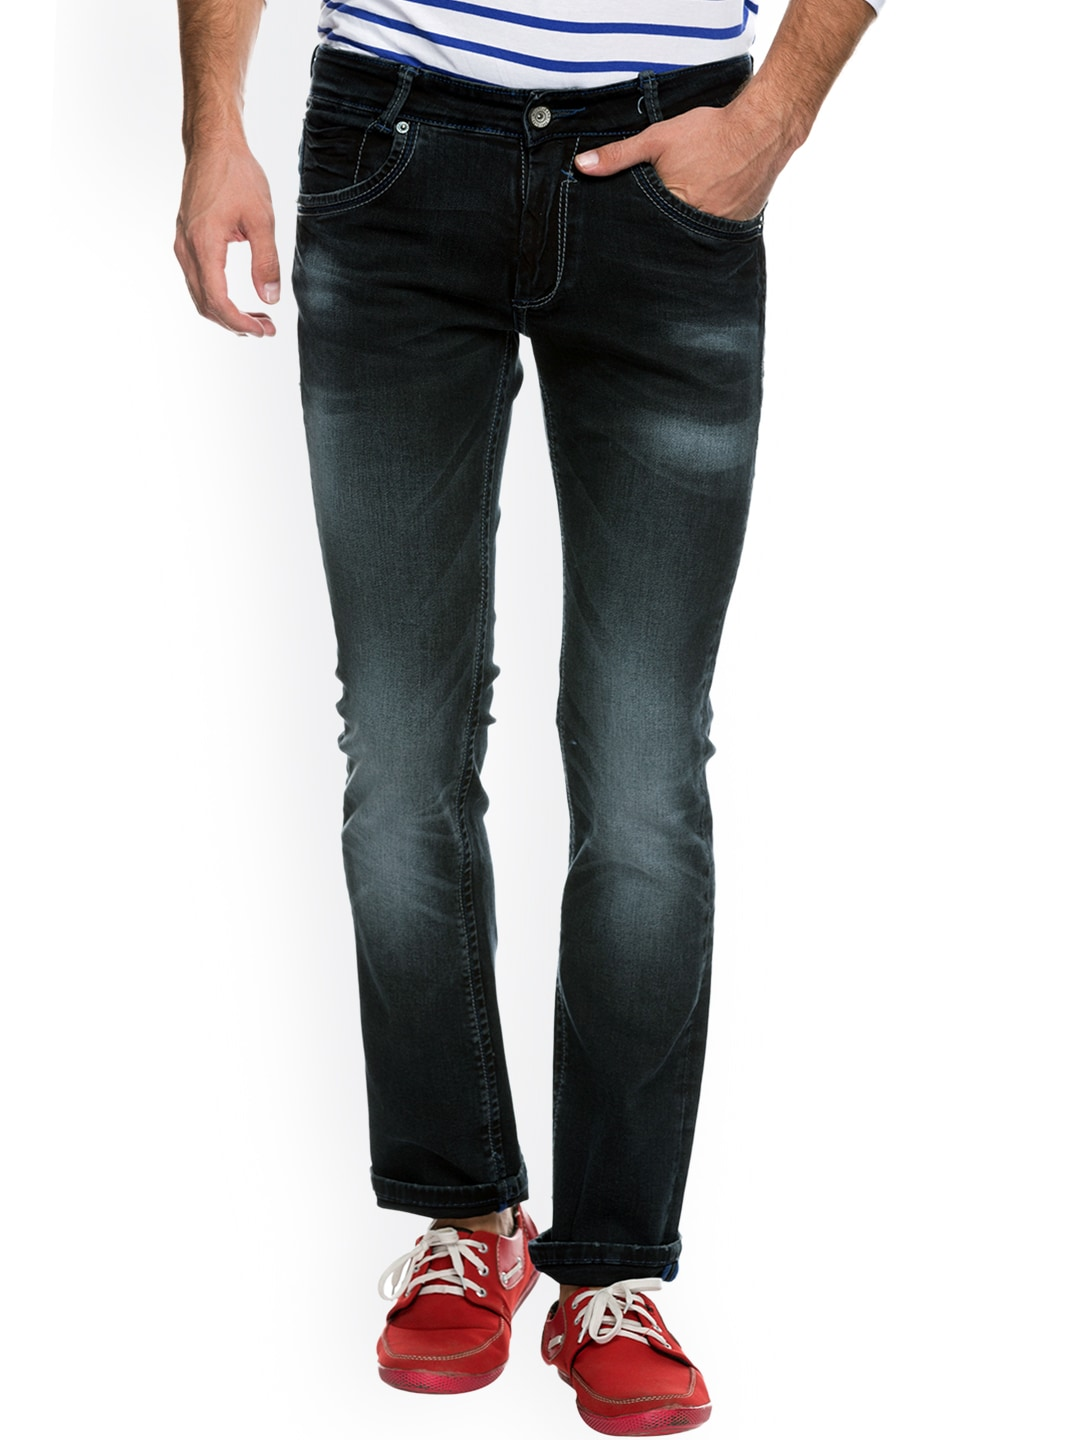 Bootcut Jeans - Buy Bootcut Jeans online in India